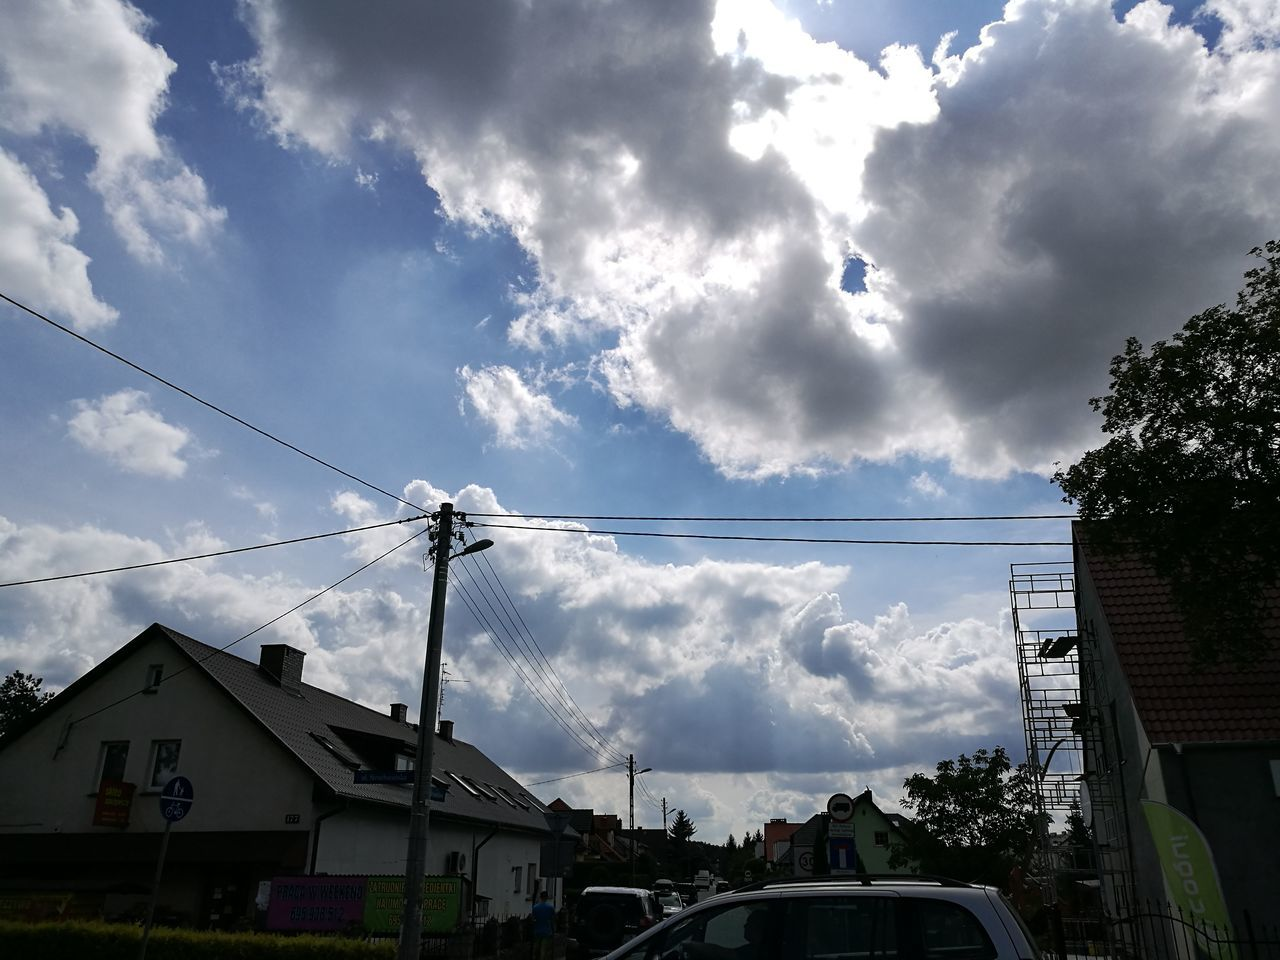 cloud - sky, sky, built structure, building exterior, architecture, cable, day, power line, house, outdoors, low angle view, no people, car, transportation, tree, electricity pylon, nature